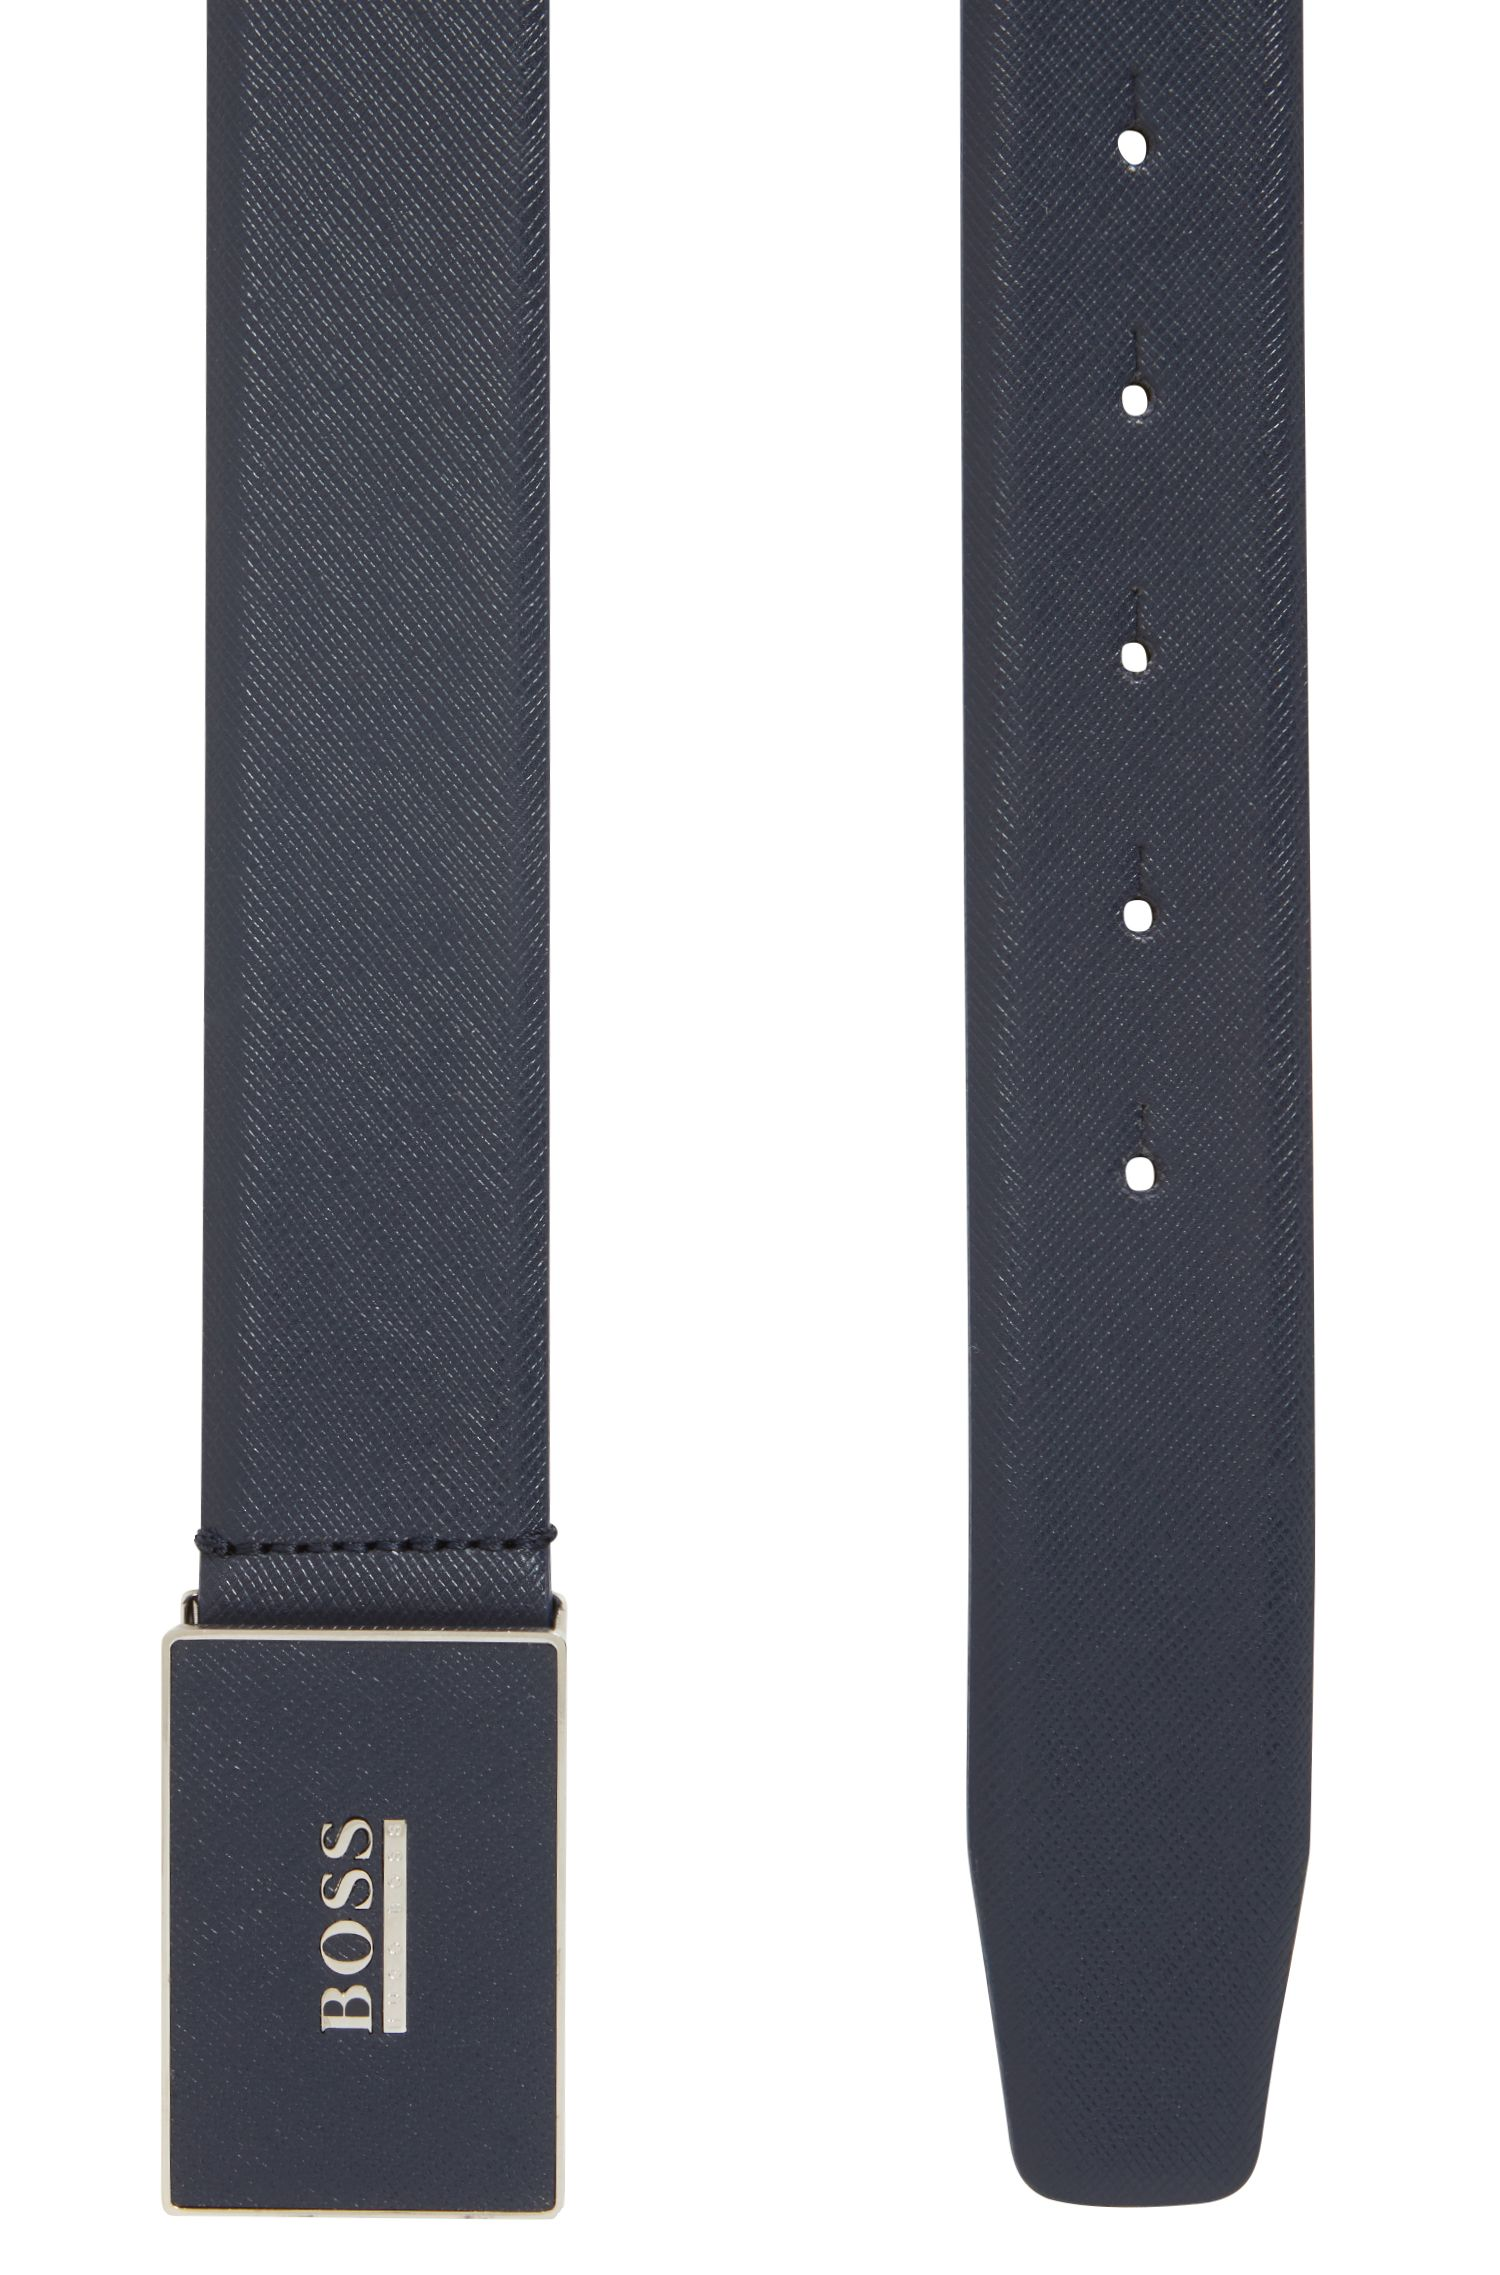 Palmellato-embossed leather belt with leather plaque buckle